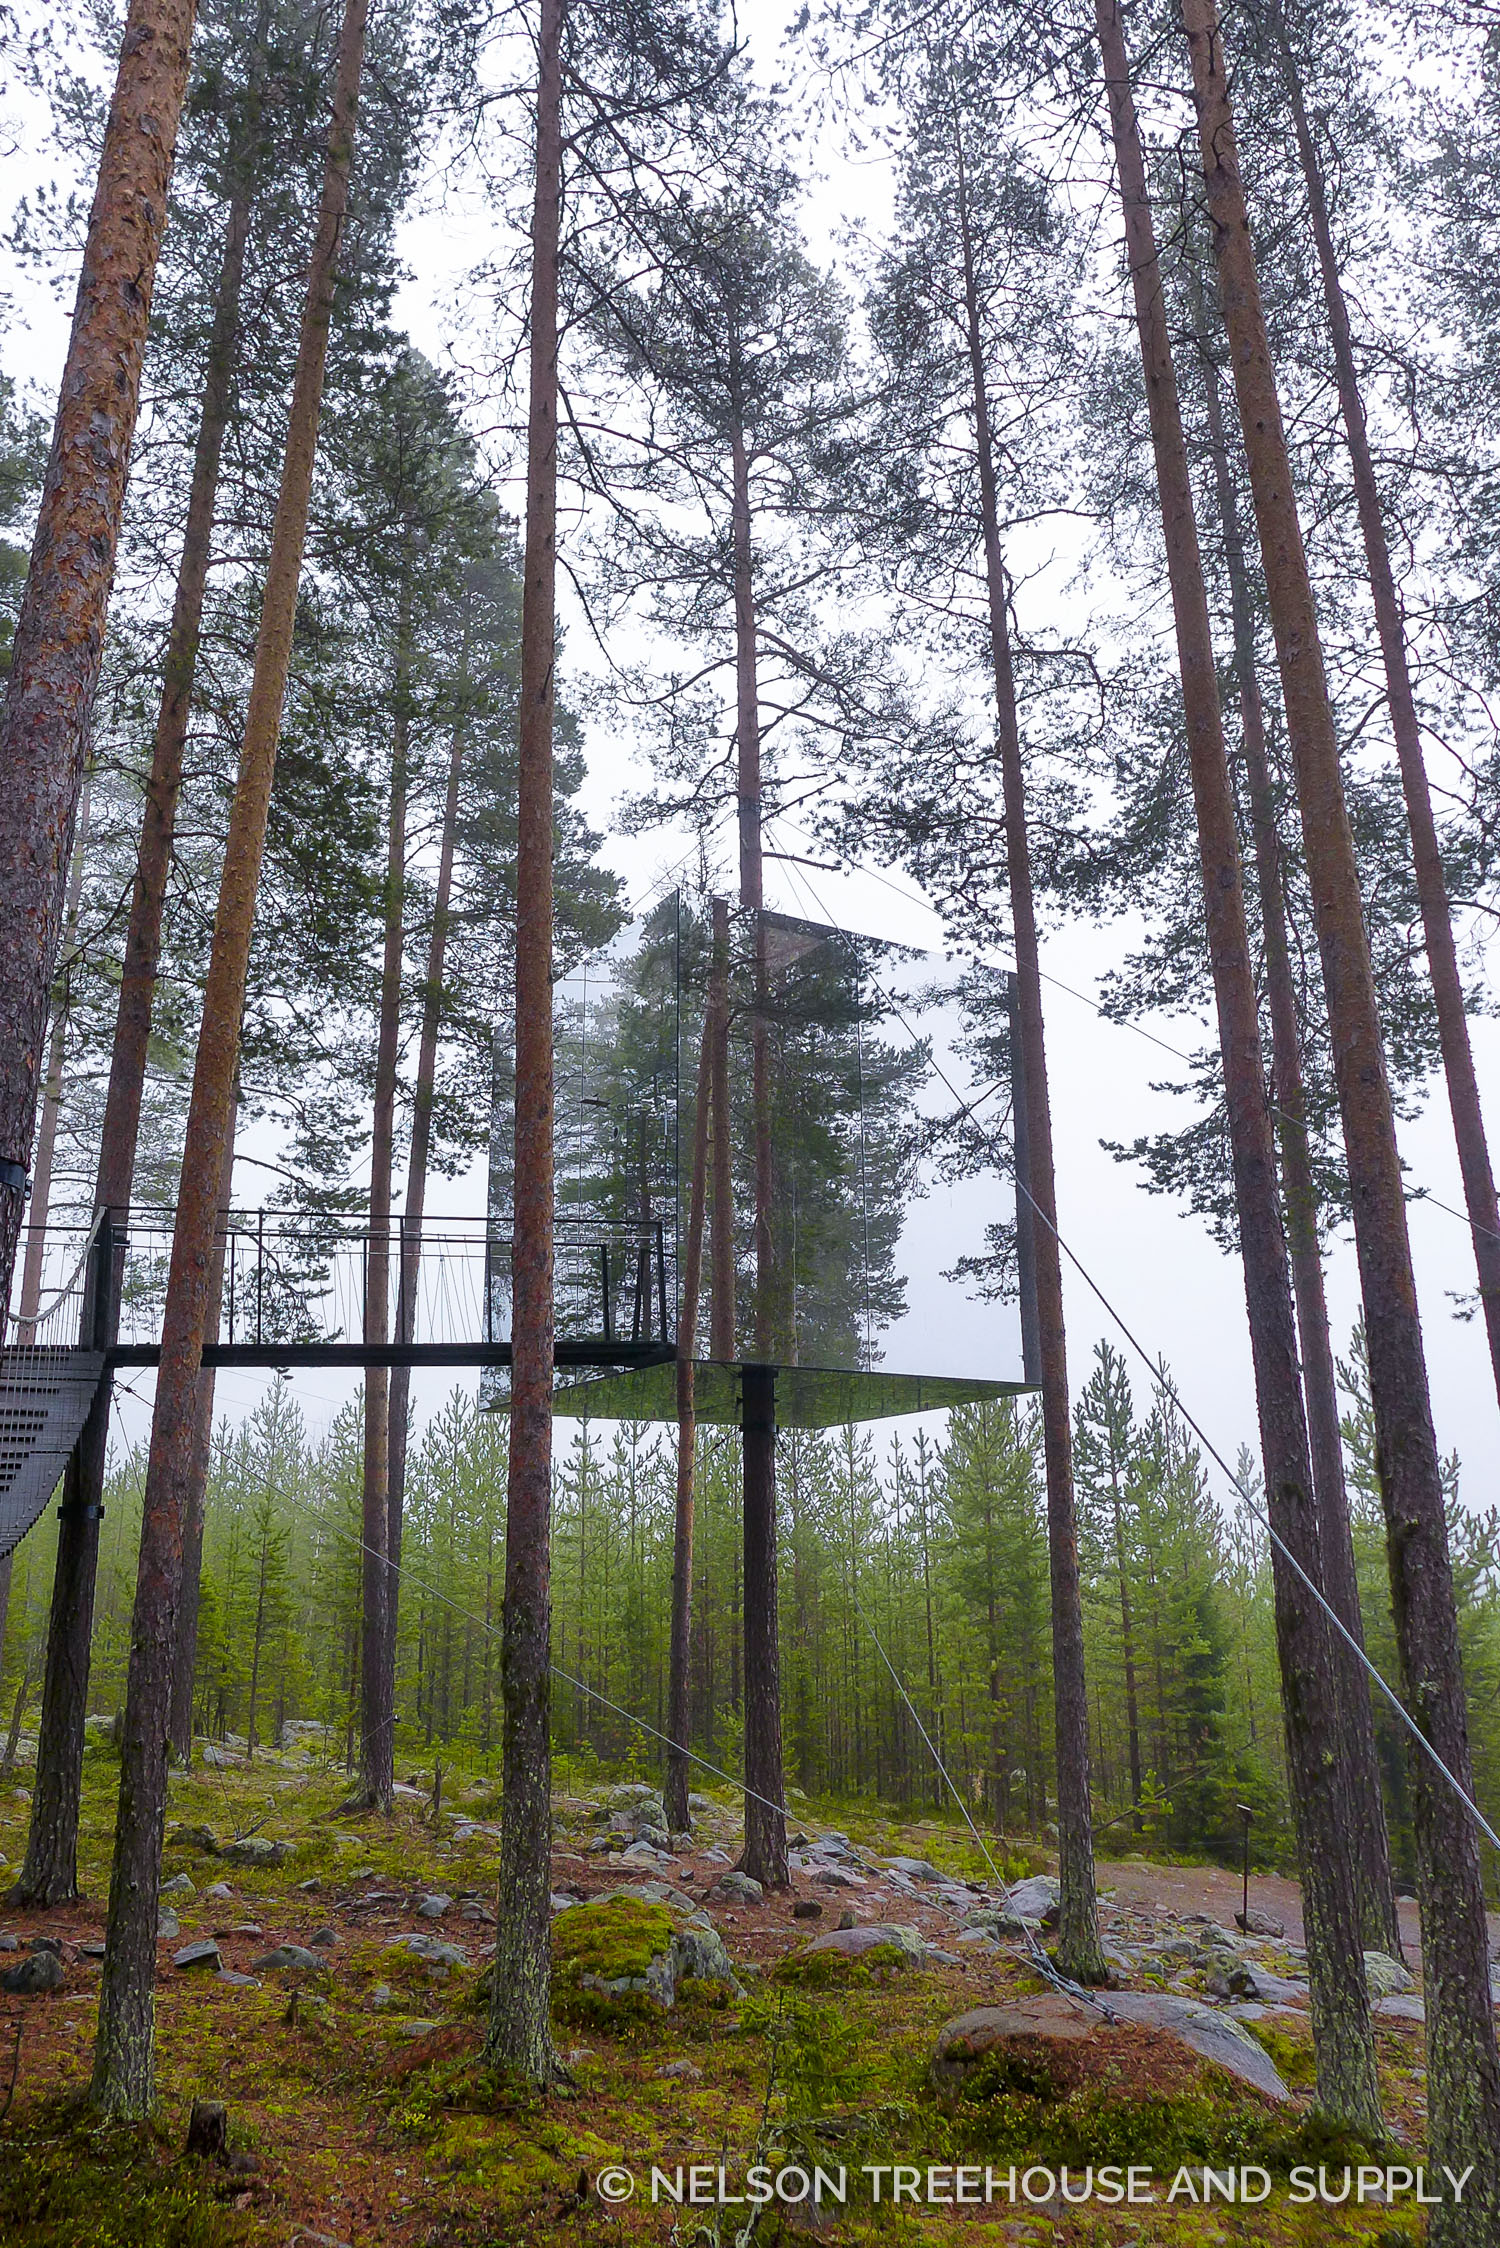 Pete admired the architectural creativity at Treehotel in Sweden.